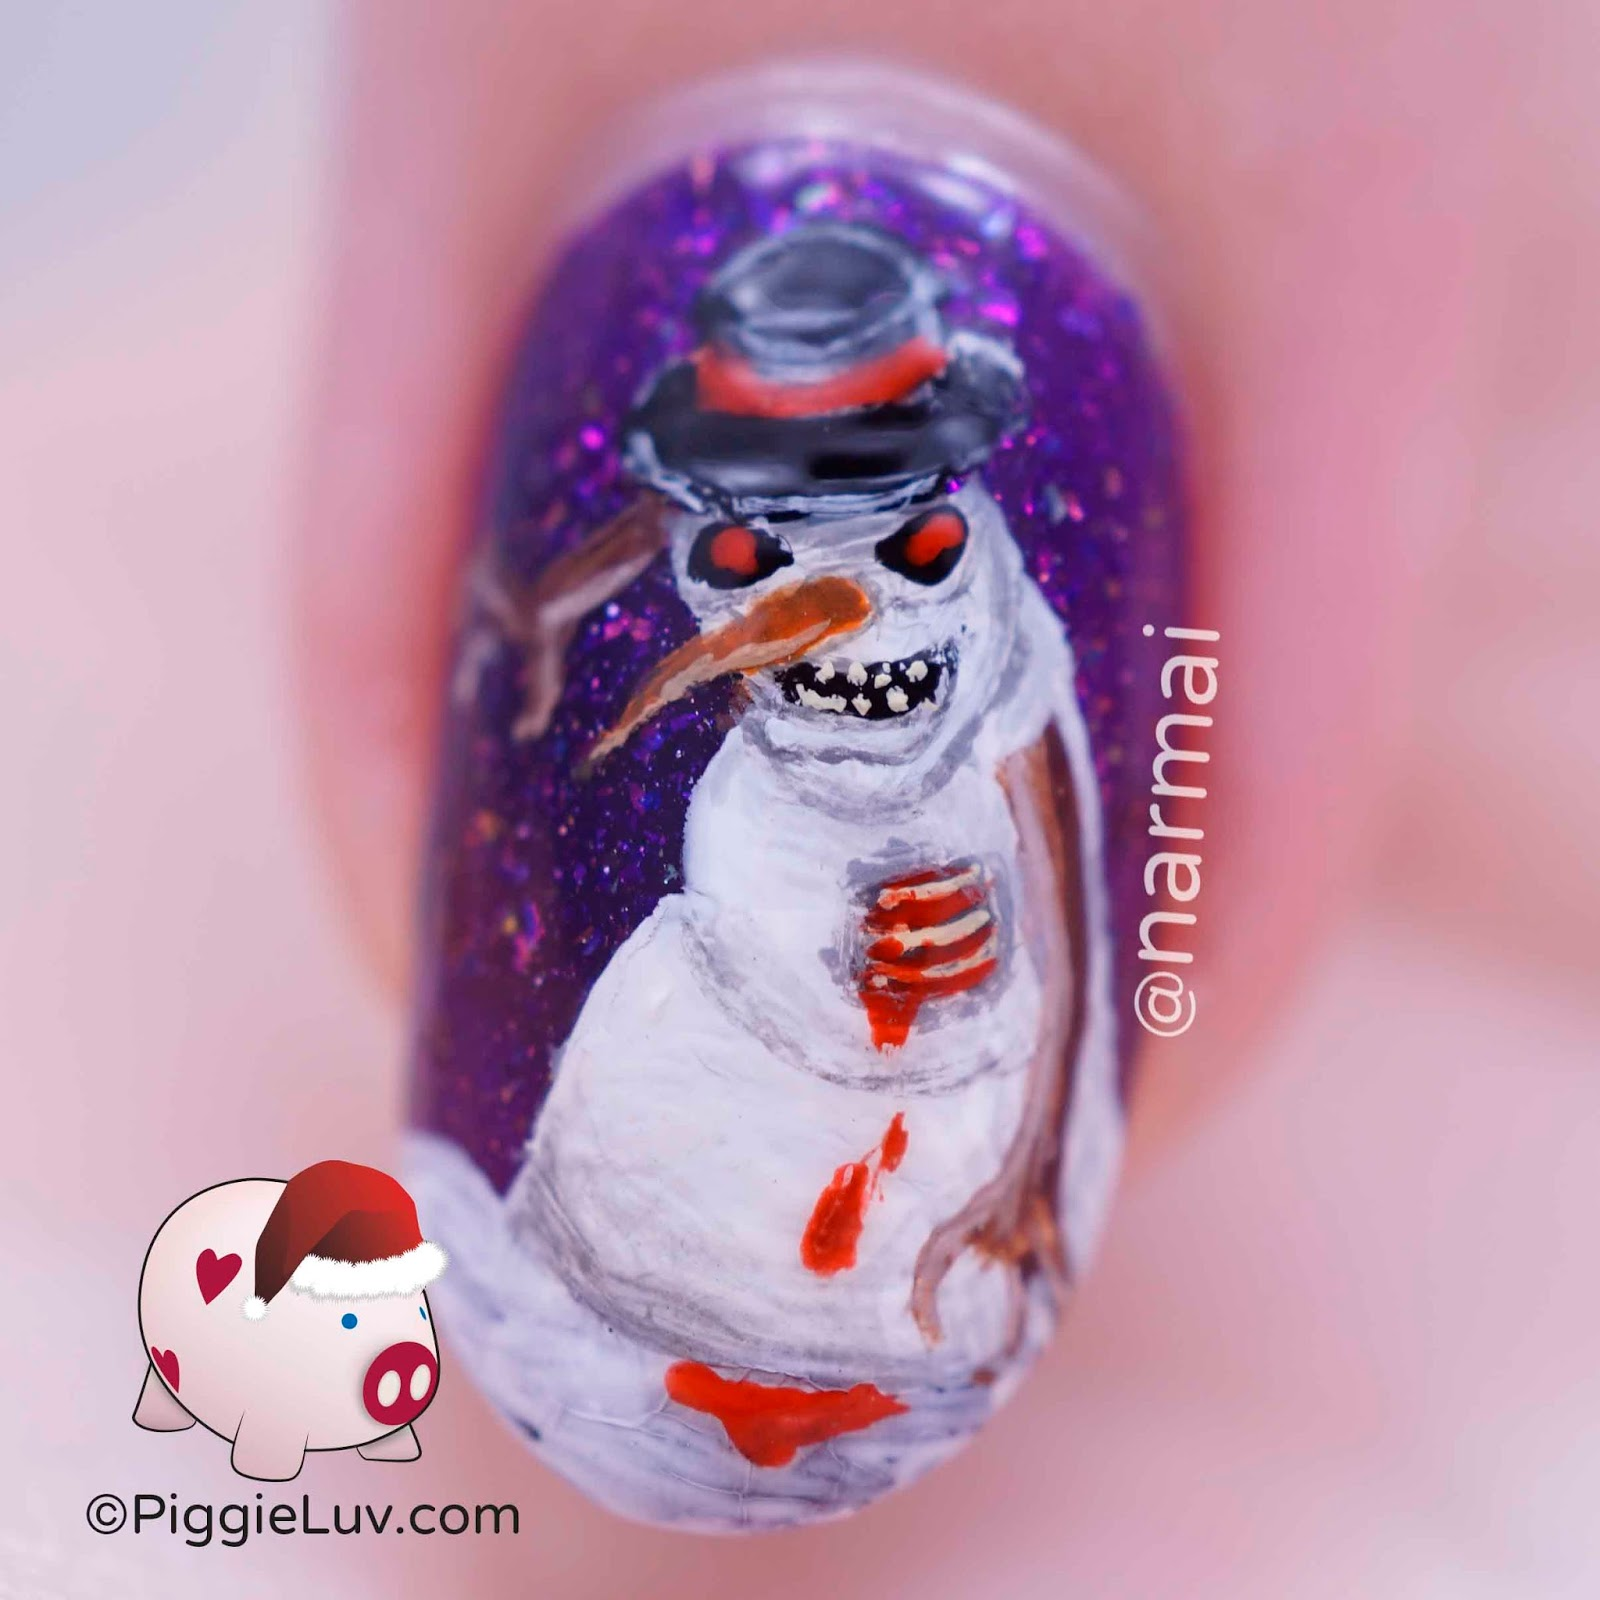 PiggieLuv: Christmas horror nail art - Zombie snowman & demonic presents